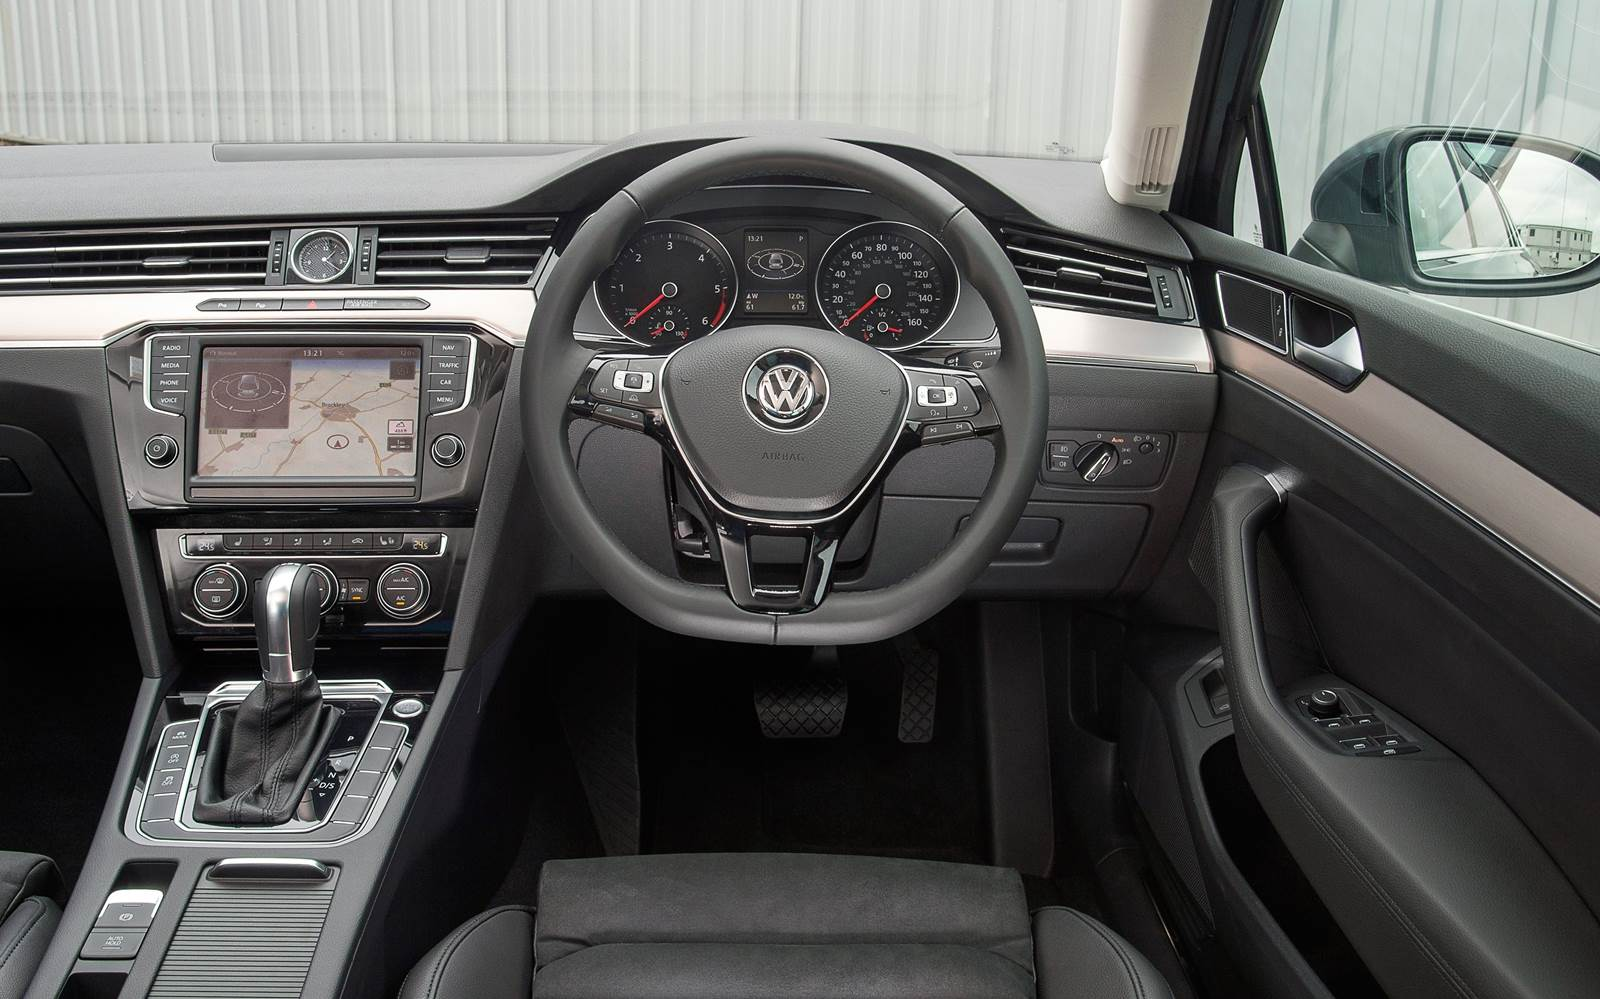 2015 Volkswagen Passat Estate - interior